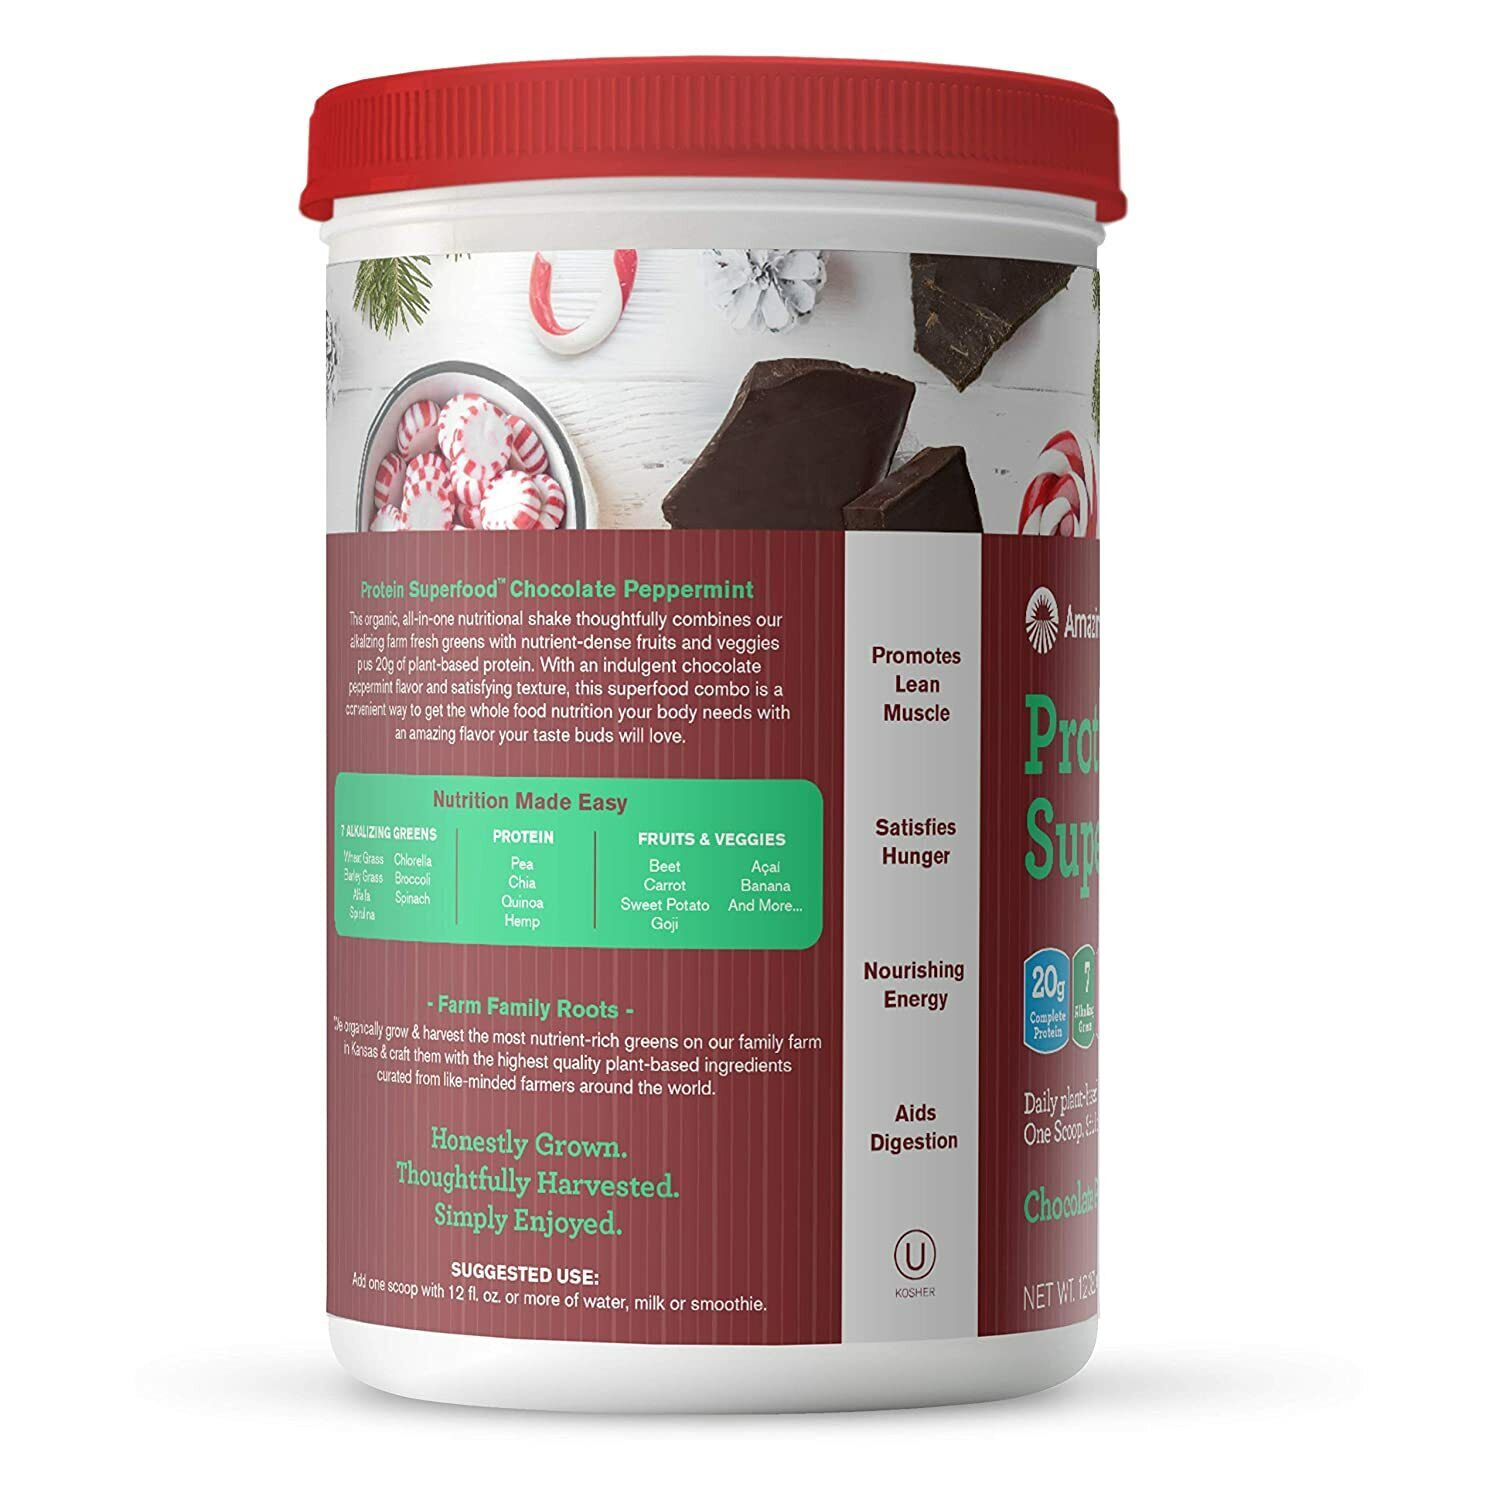 Amazing Grass Superfood organic Vegan Protein Powder Chocolate Peppermint Flavor 1